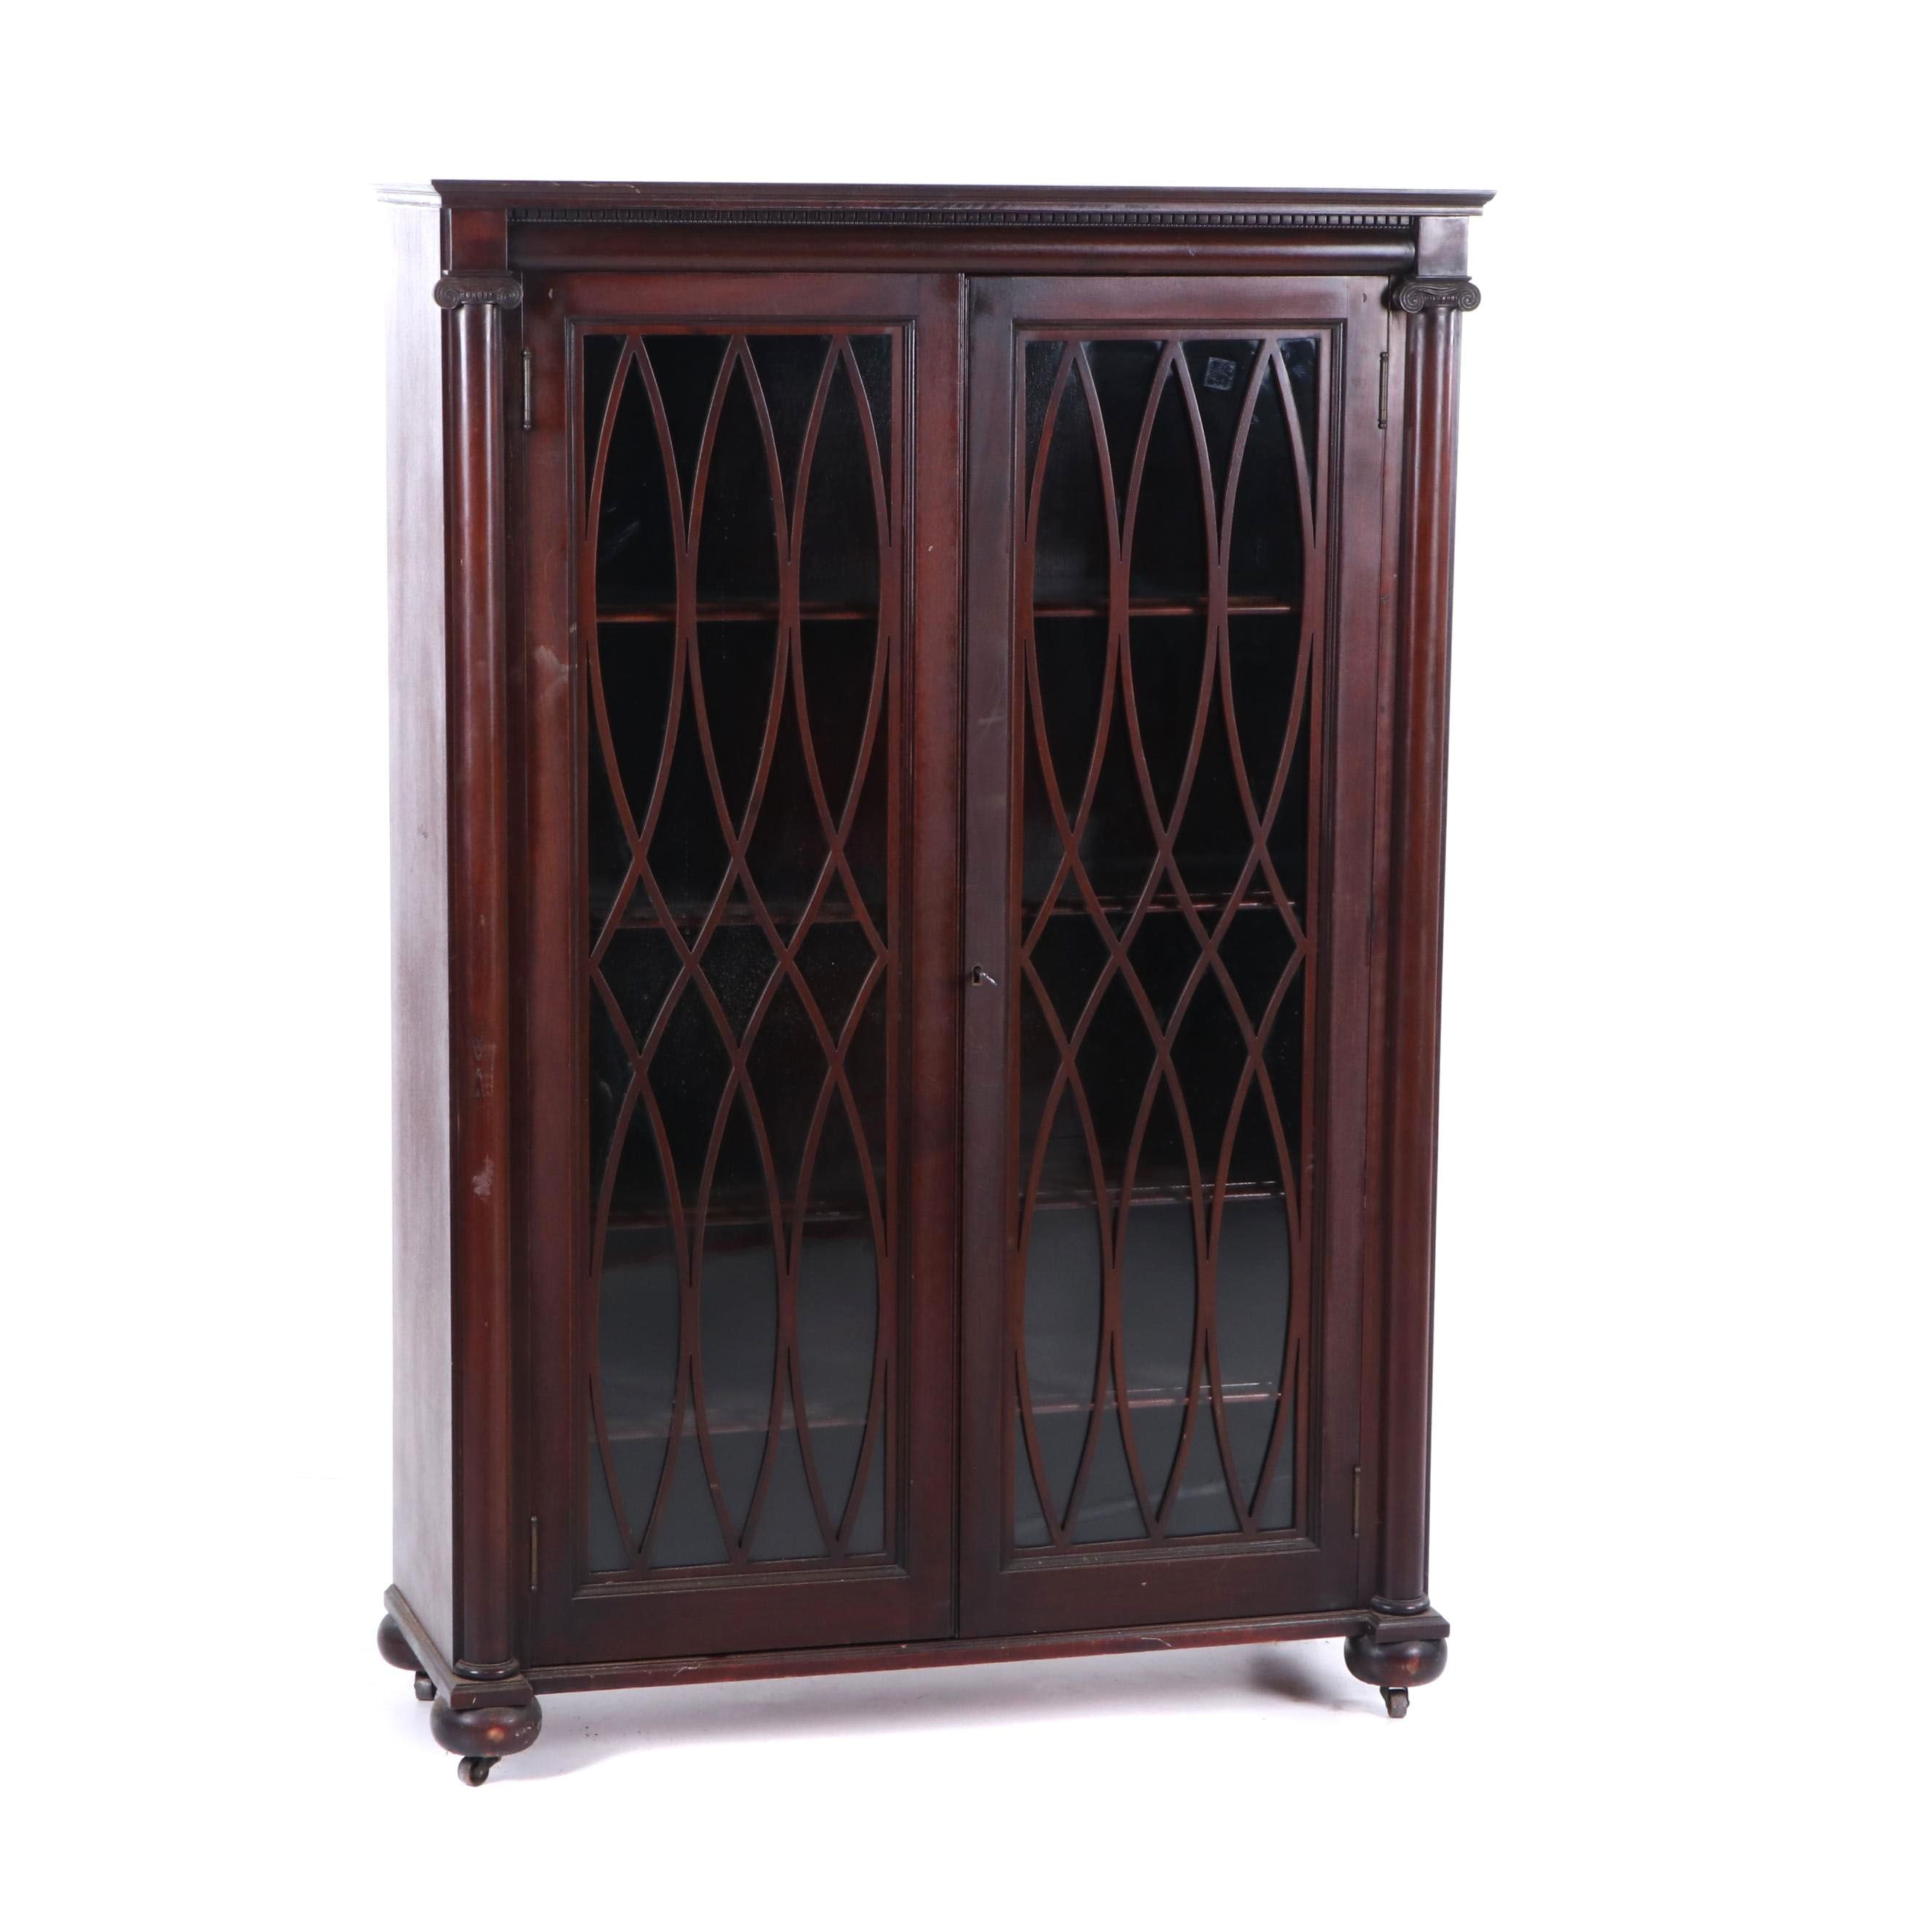 Neoclassical Style Mahogany Four-Shelf Bookcase on Casters, Mid-20th Century